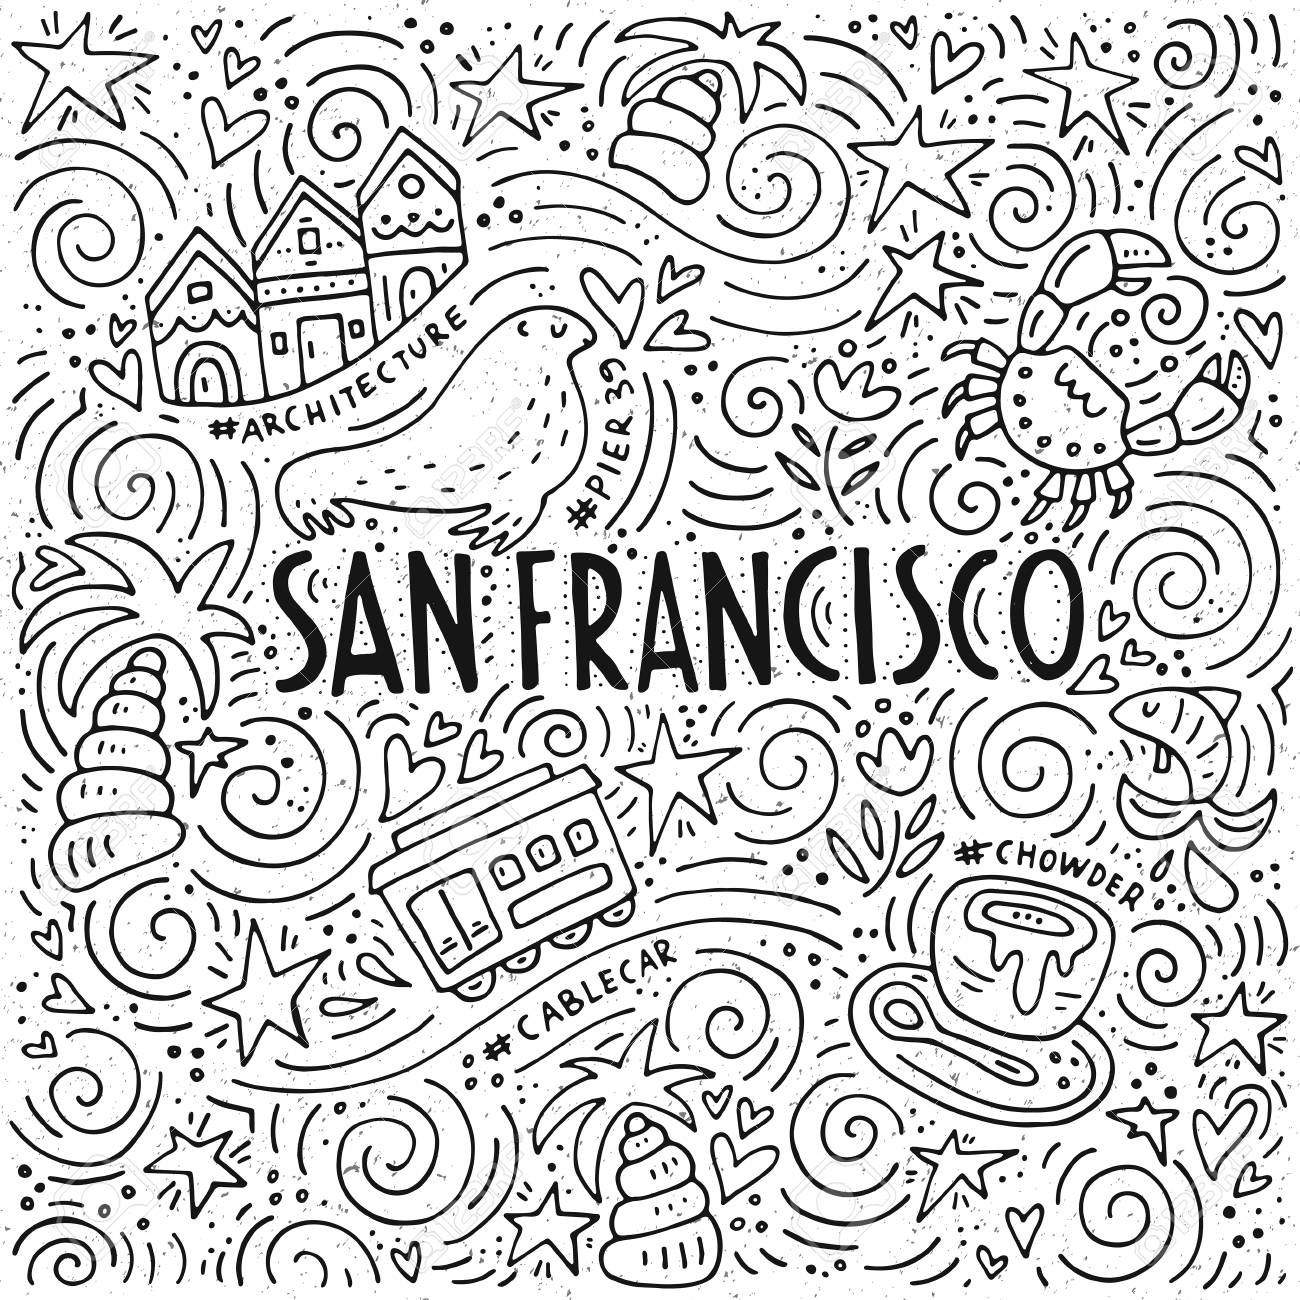 The San Francisco Words And The Different Symbols Of The City